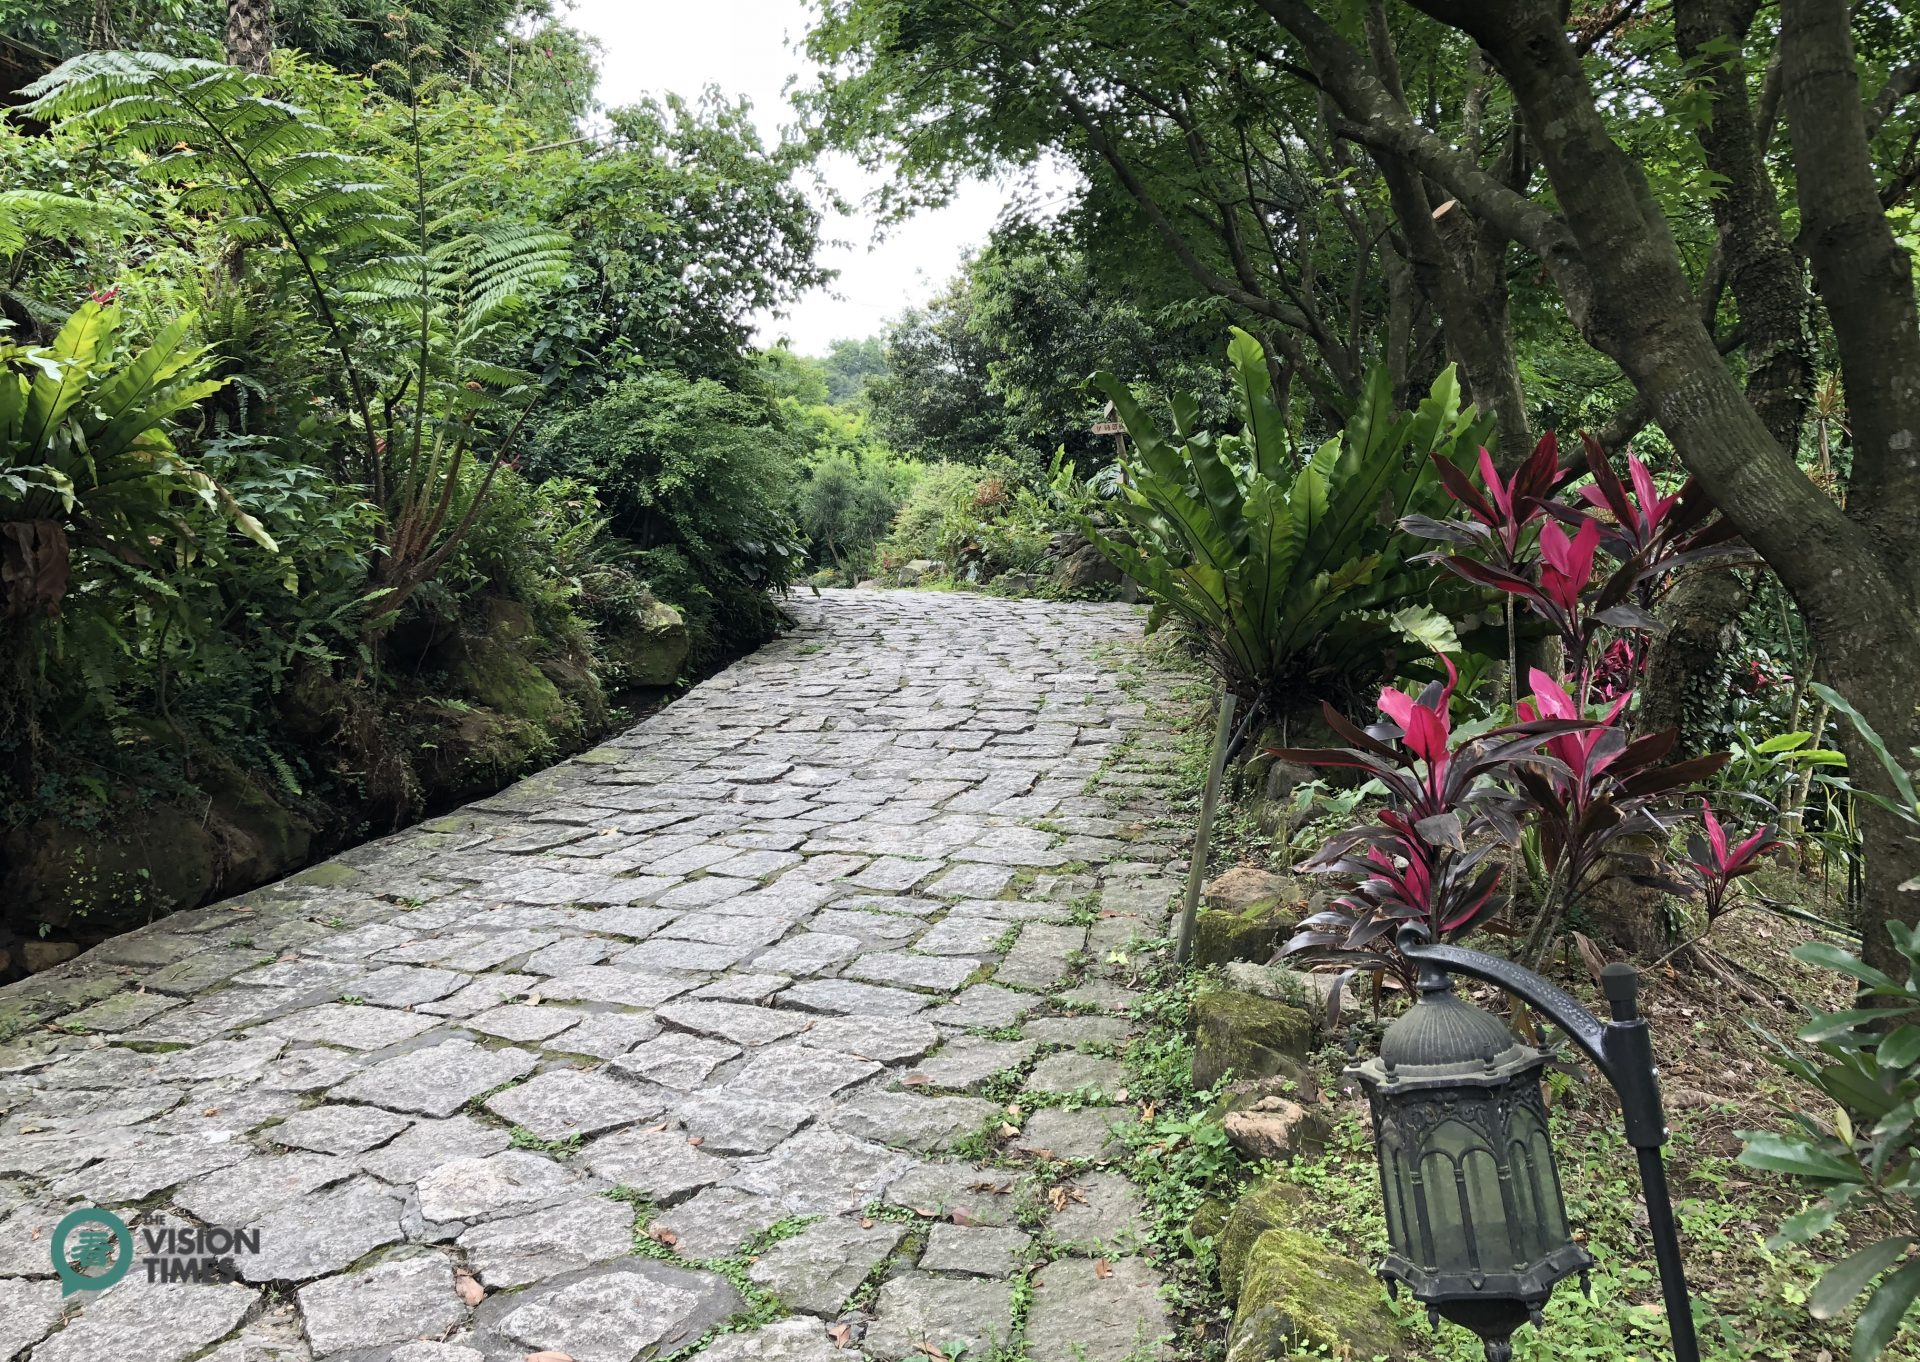 The walking path leading to the entrance of Fangyu Farm. (Image: Billy Shyu / Vision Times)